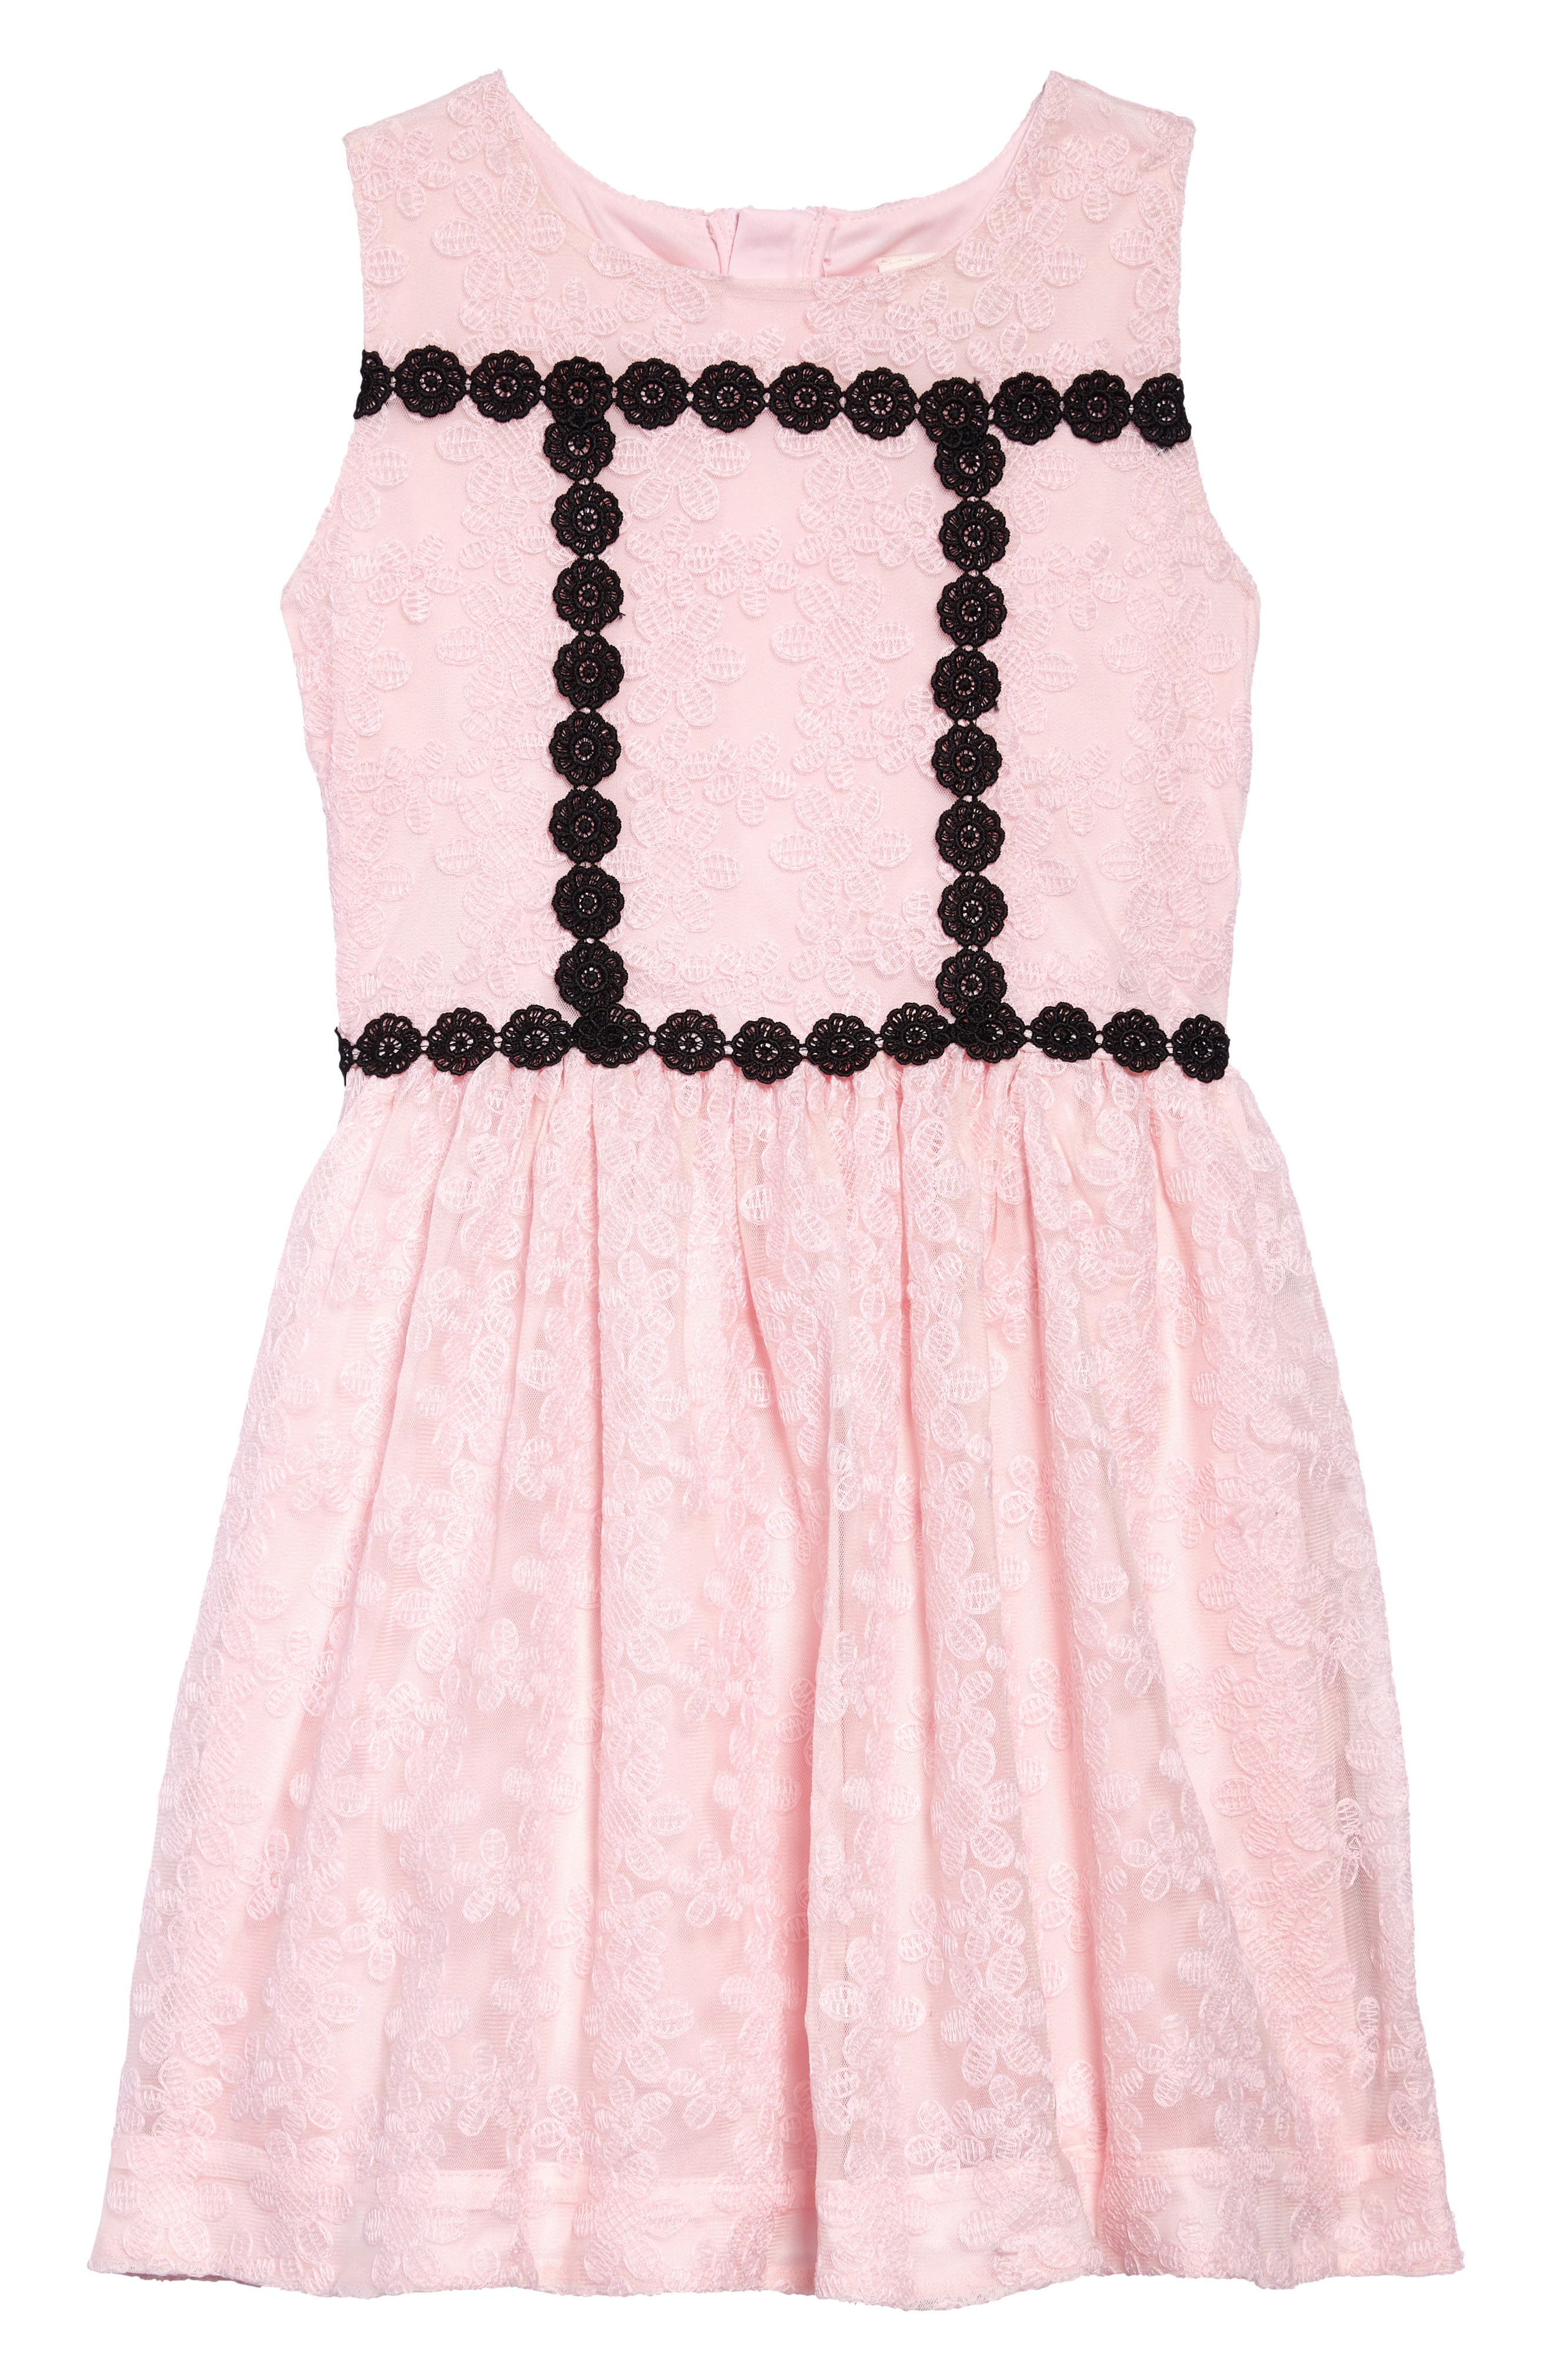 KATE SPADE NEW YORK,                             floral mesh sleeveless dress,                             Main thumbnail 1, color,                             681